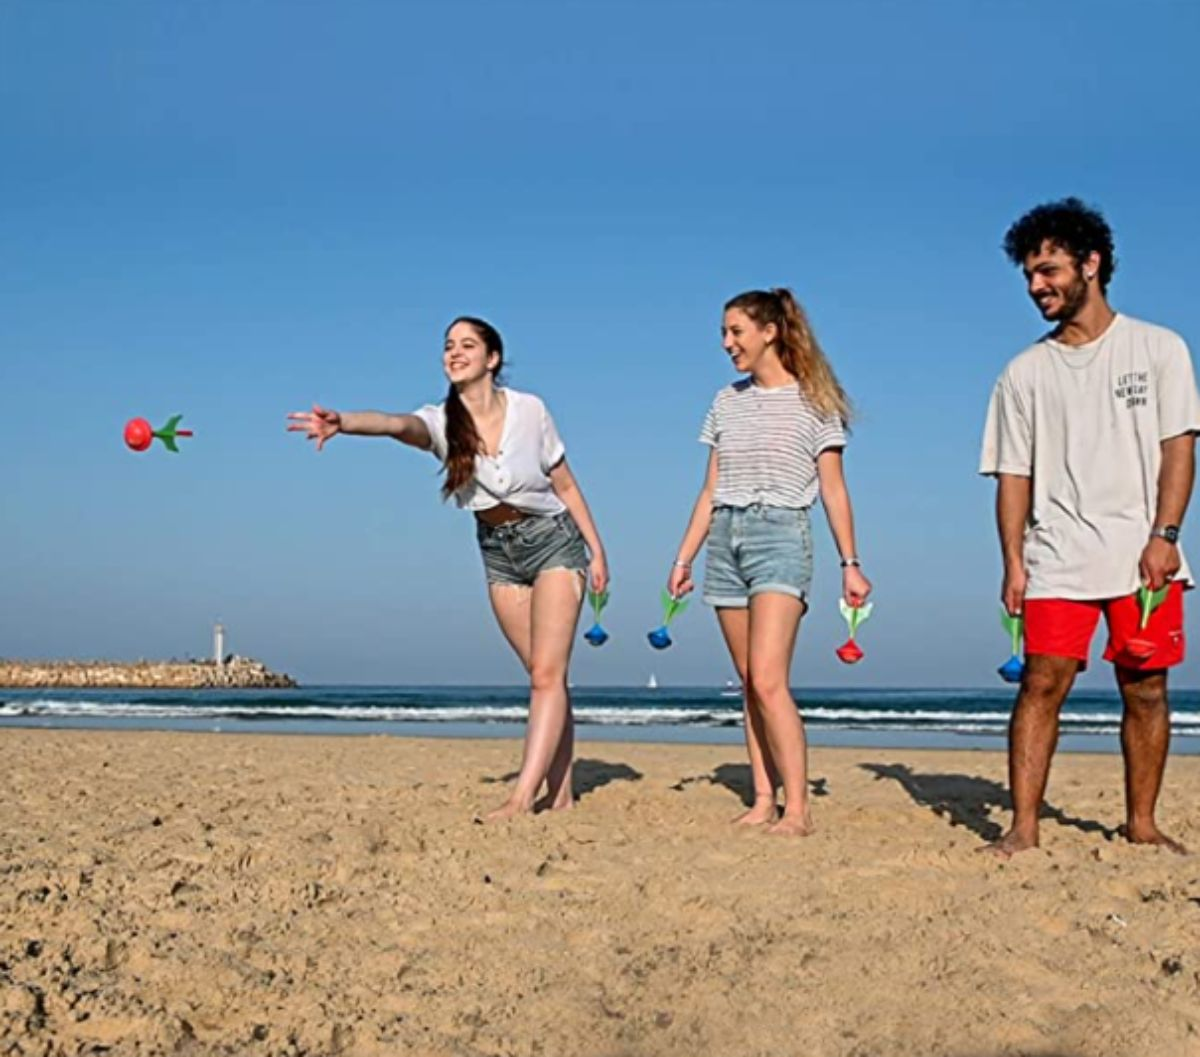 2 teen girls and a boy stand on a beach throwing lawn darts